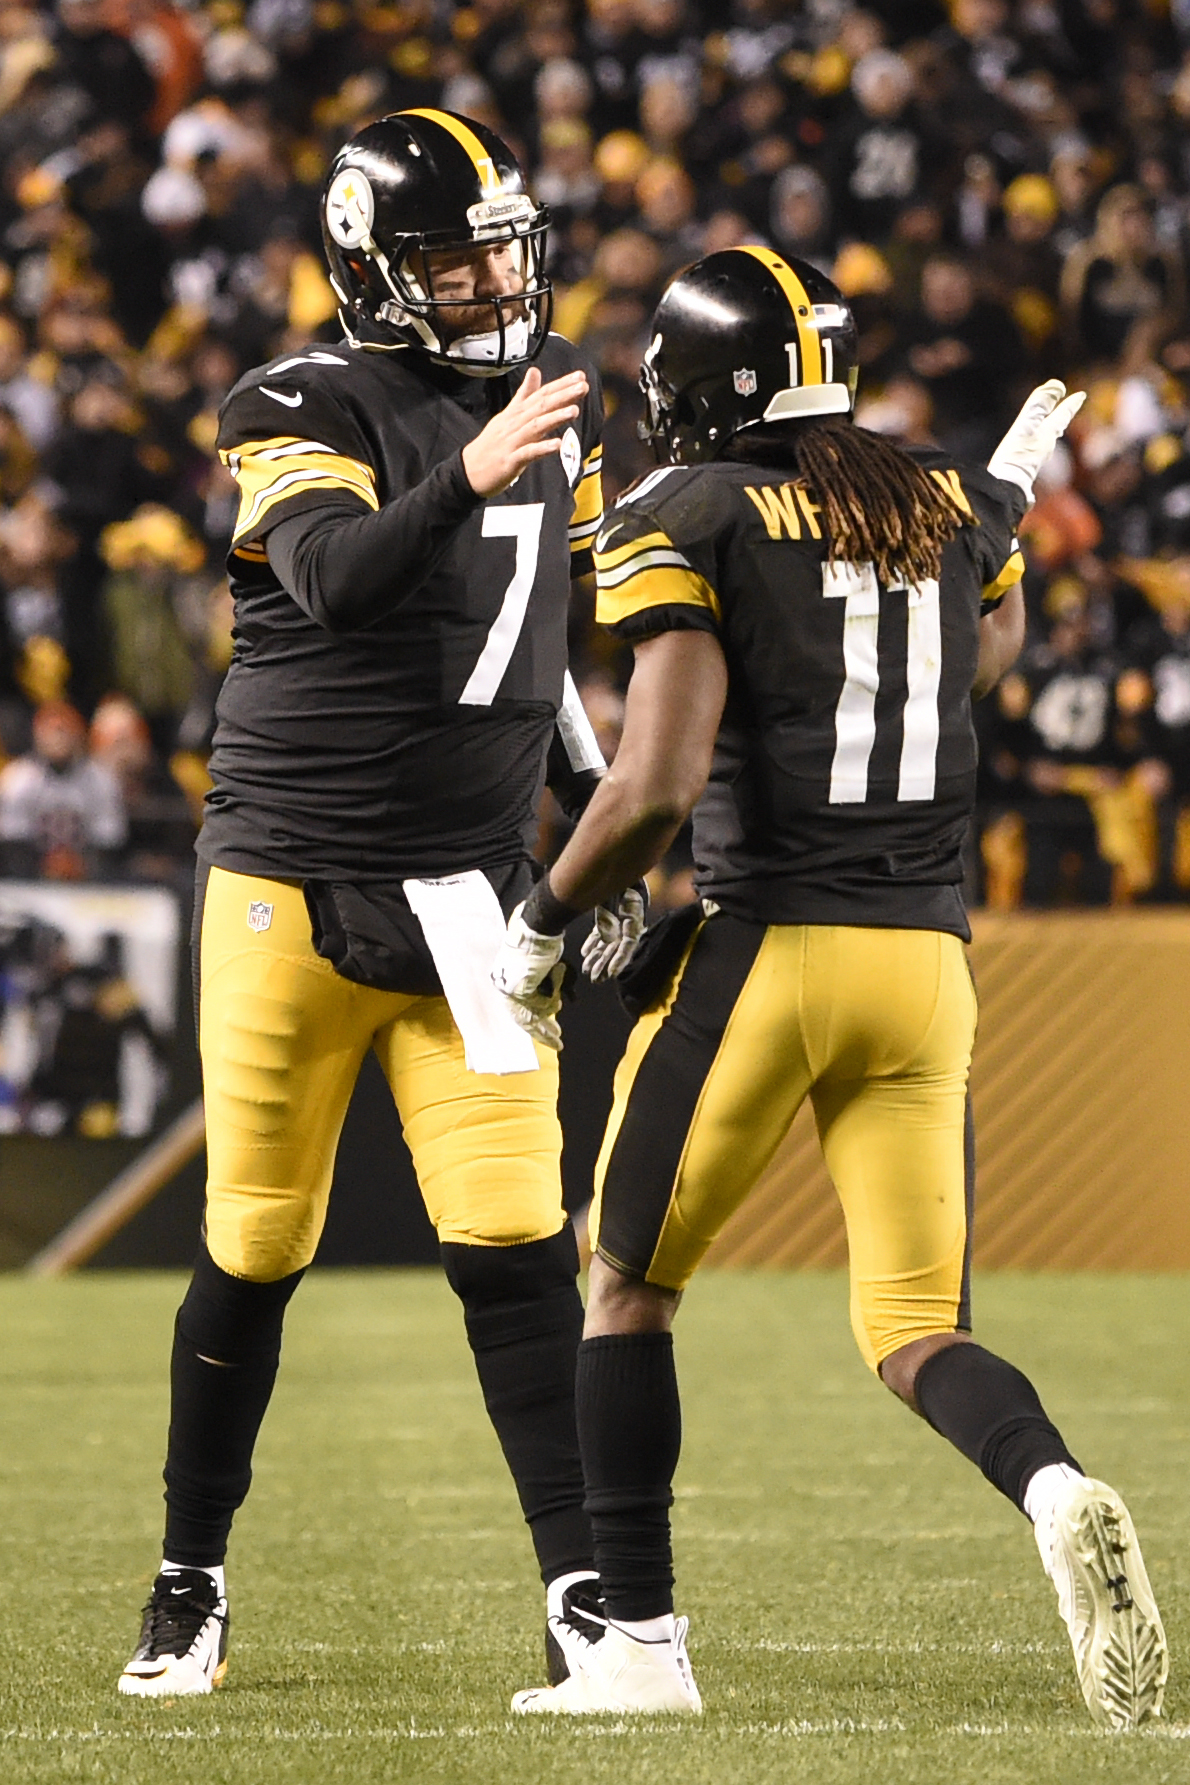 Pittsburgh Steelers wide receiver Markus Wheaton (11) celebrates with quarterback Ben Roethlisberger (7) after scoring the two connected on a touchdown pass during the second half of an NFL football game against the Denver Broncos in Pittsburgh, Sunday, D